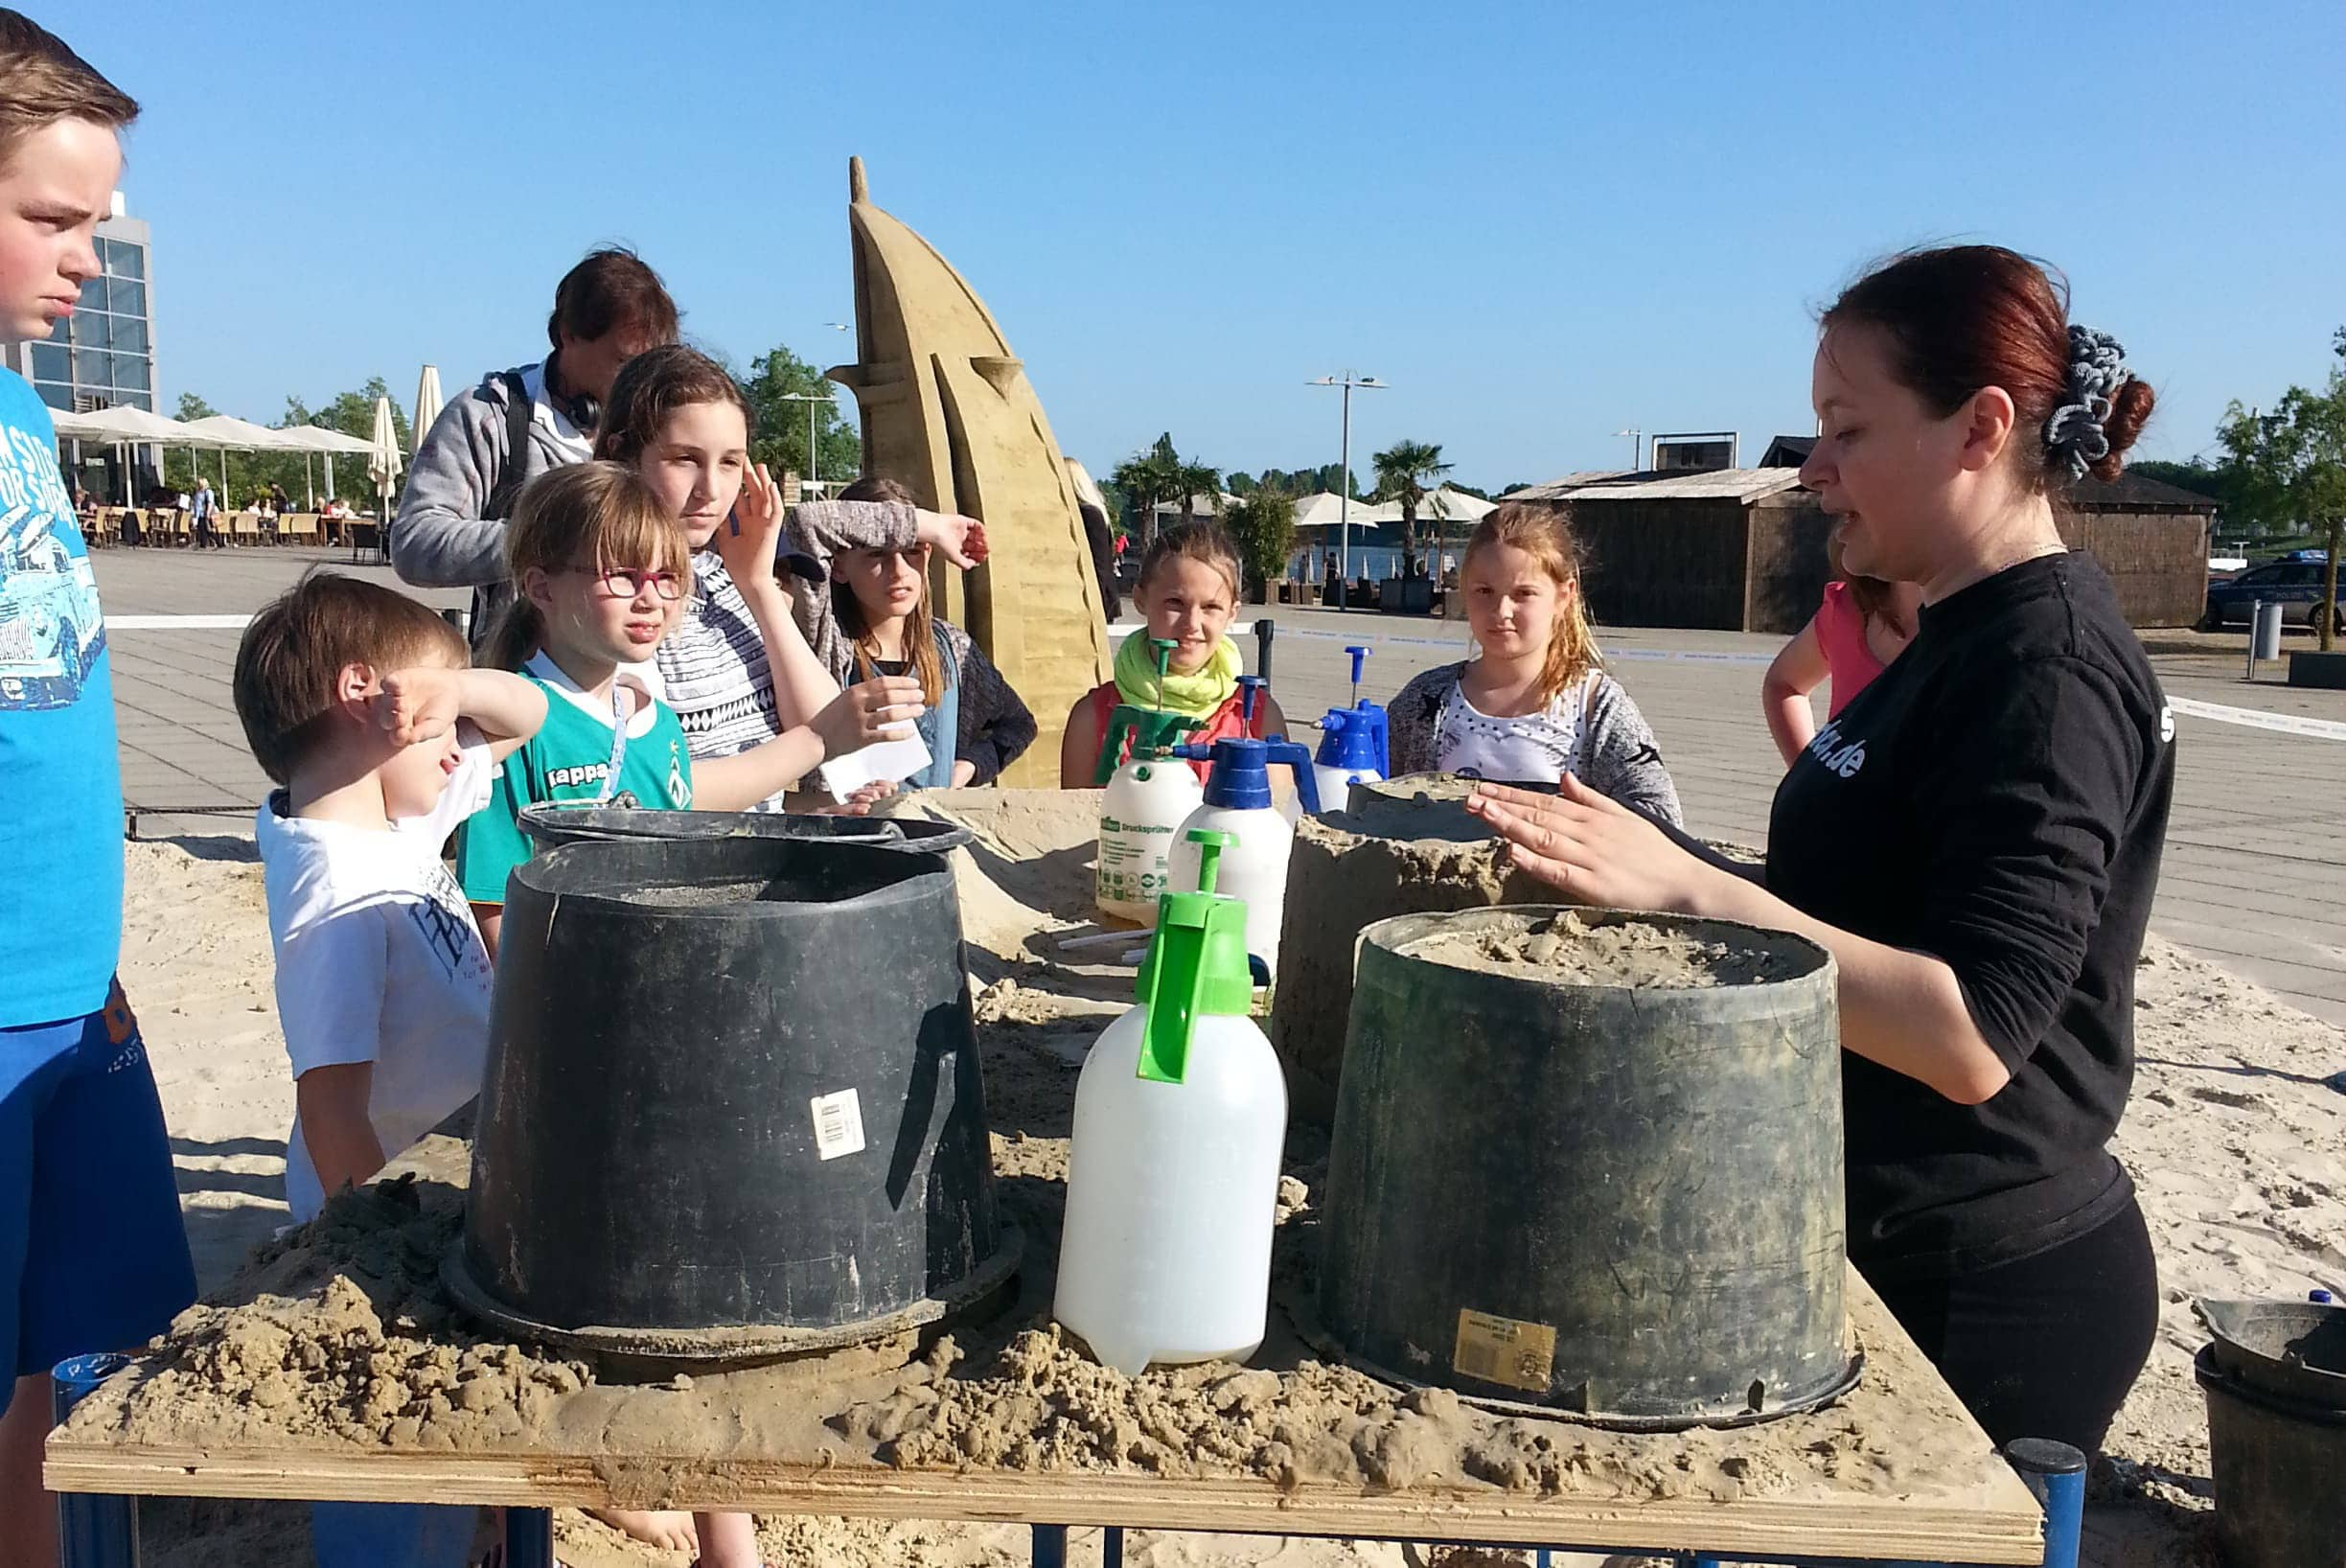 Sand sculptures are an outstanding medium for teambildung processes